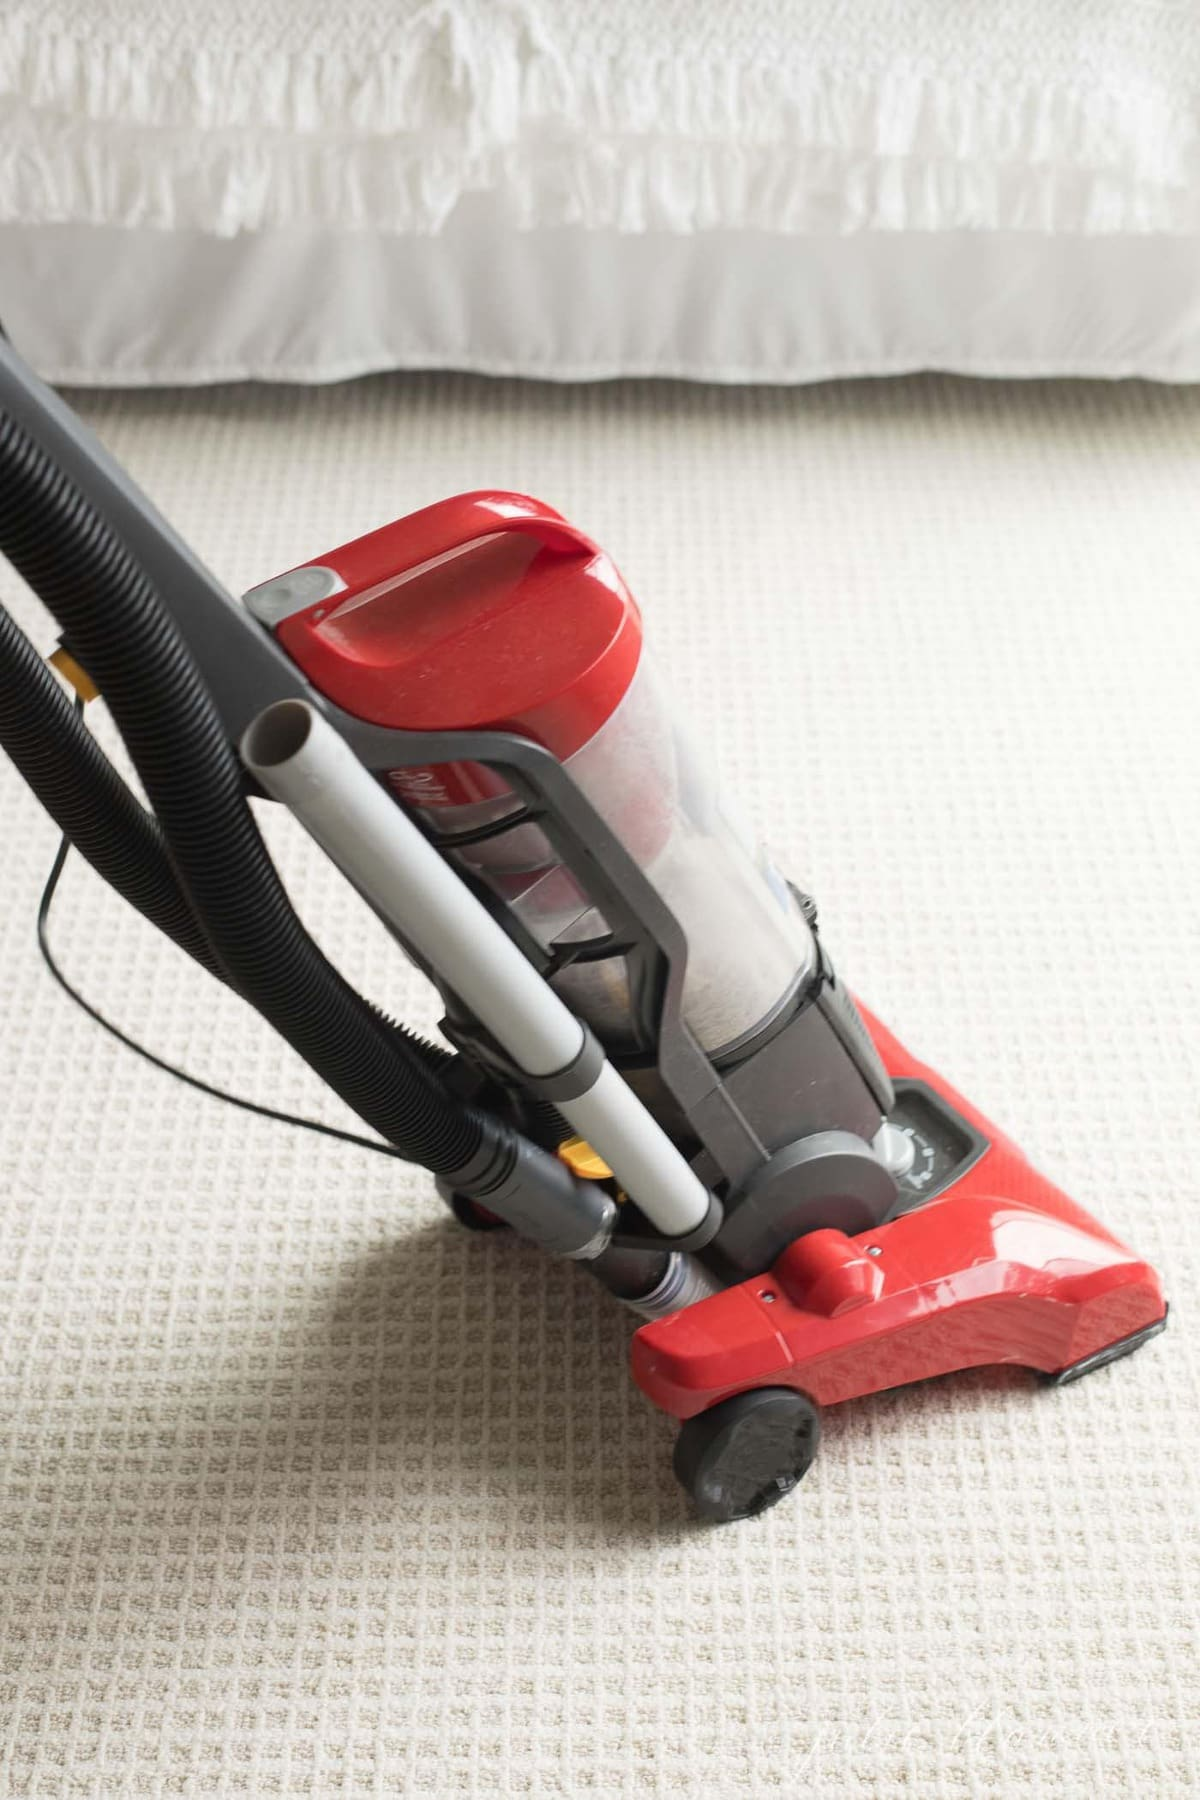 patterned carpet in a bedroom, red vacuum in motion.